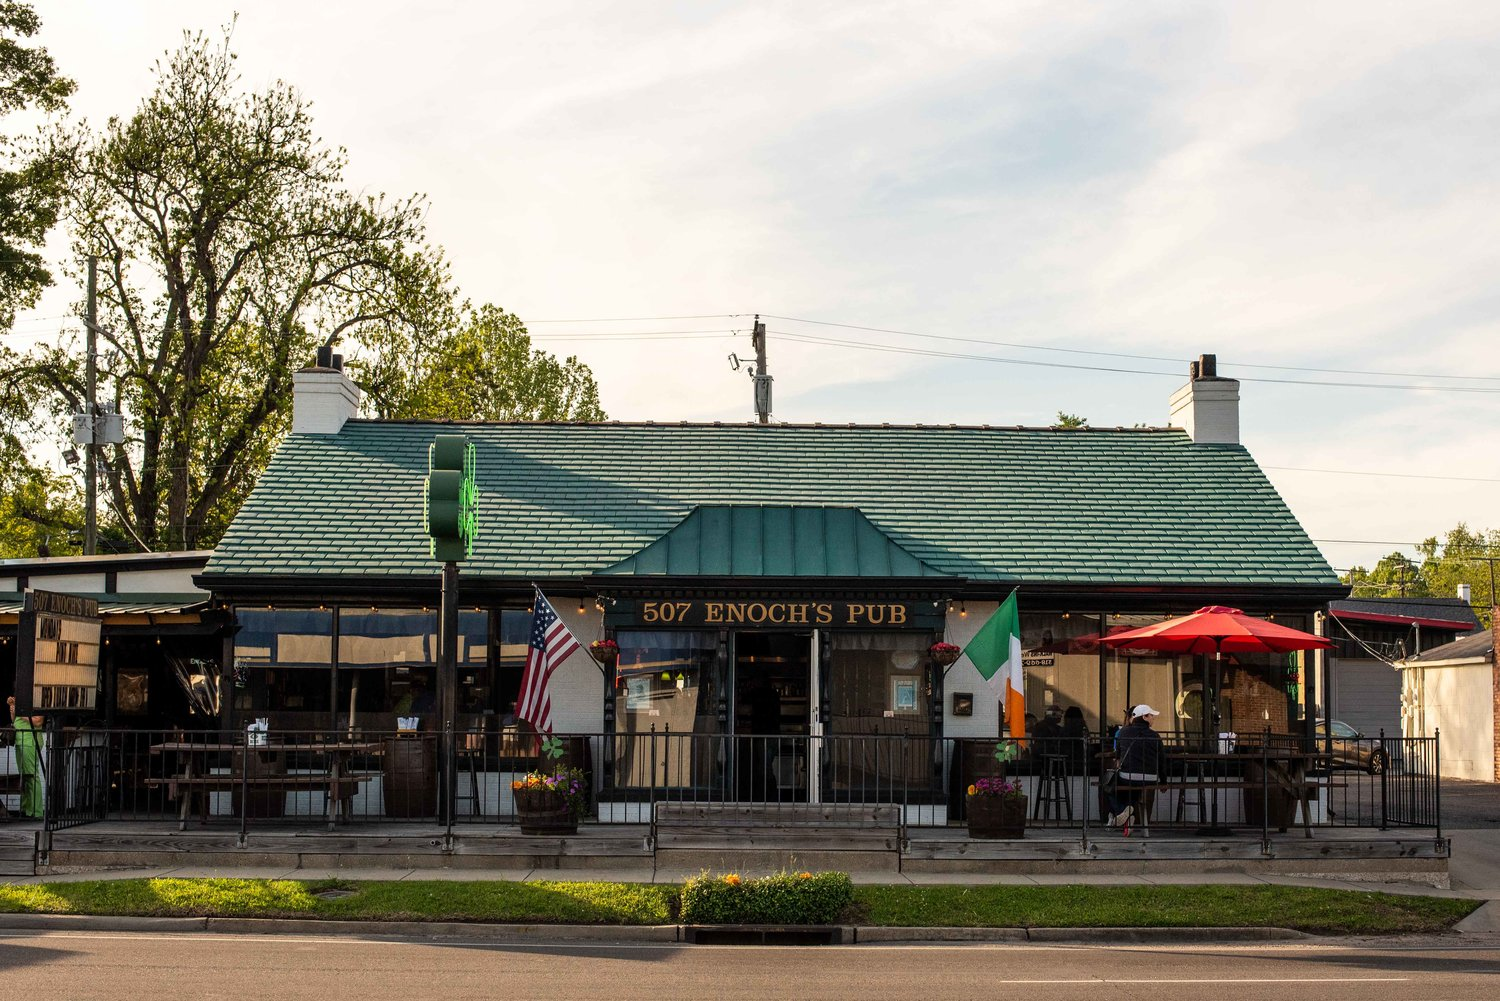 """Enoch's Pub…You probably figured that out by the huge sign that says """"Enoch's Pub""""."""